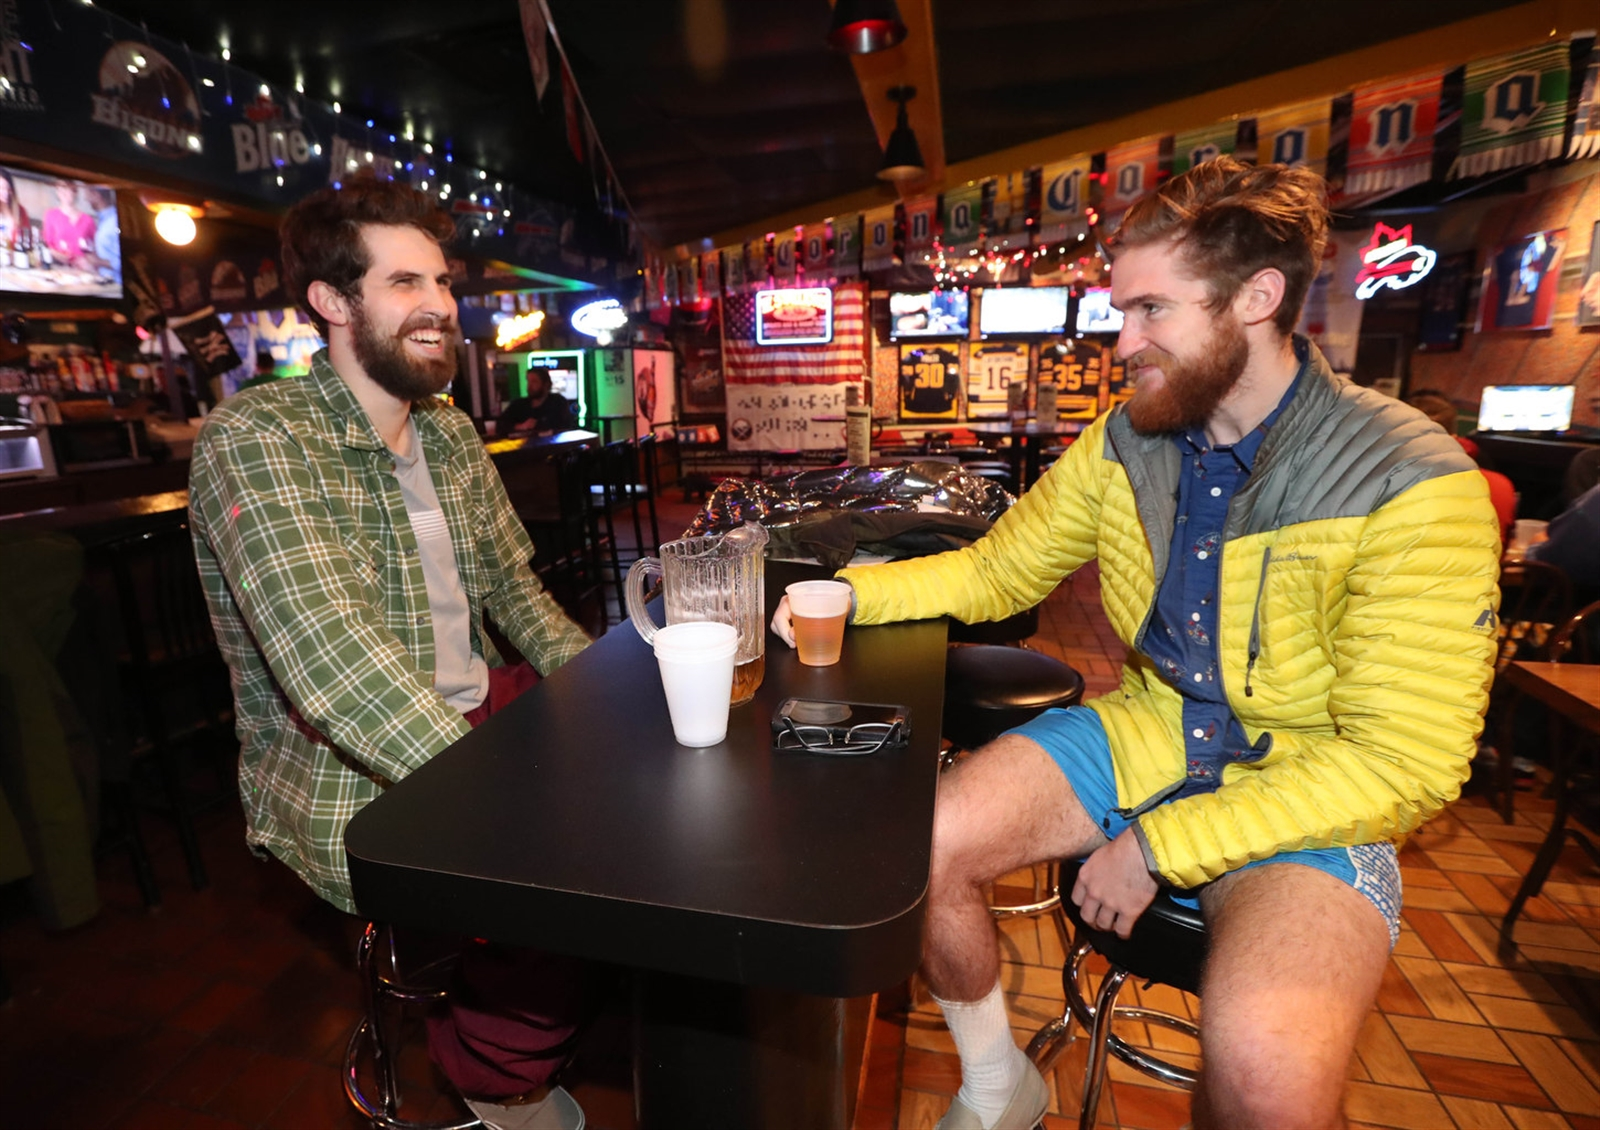 Justin Waldorf, of Eden, and Nicholas McDonagh, of Angola, have a beer after playing volleyball, Thursday, Dec. 21, 2017.